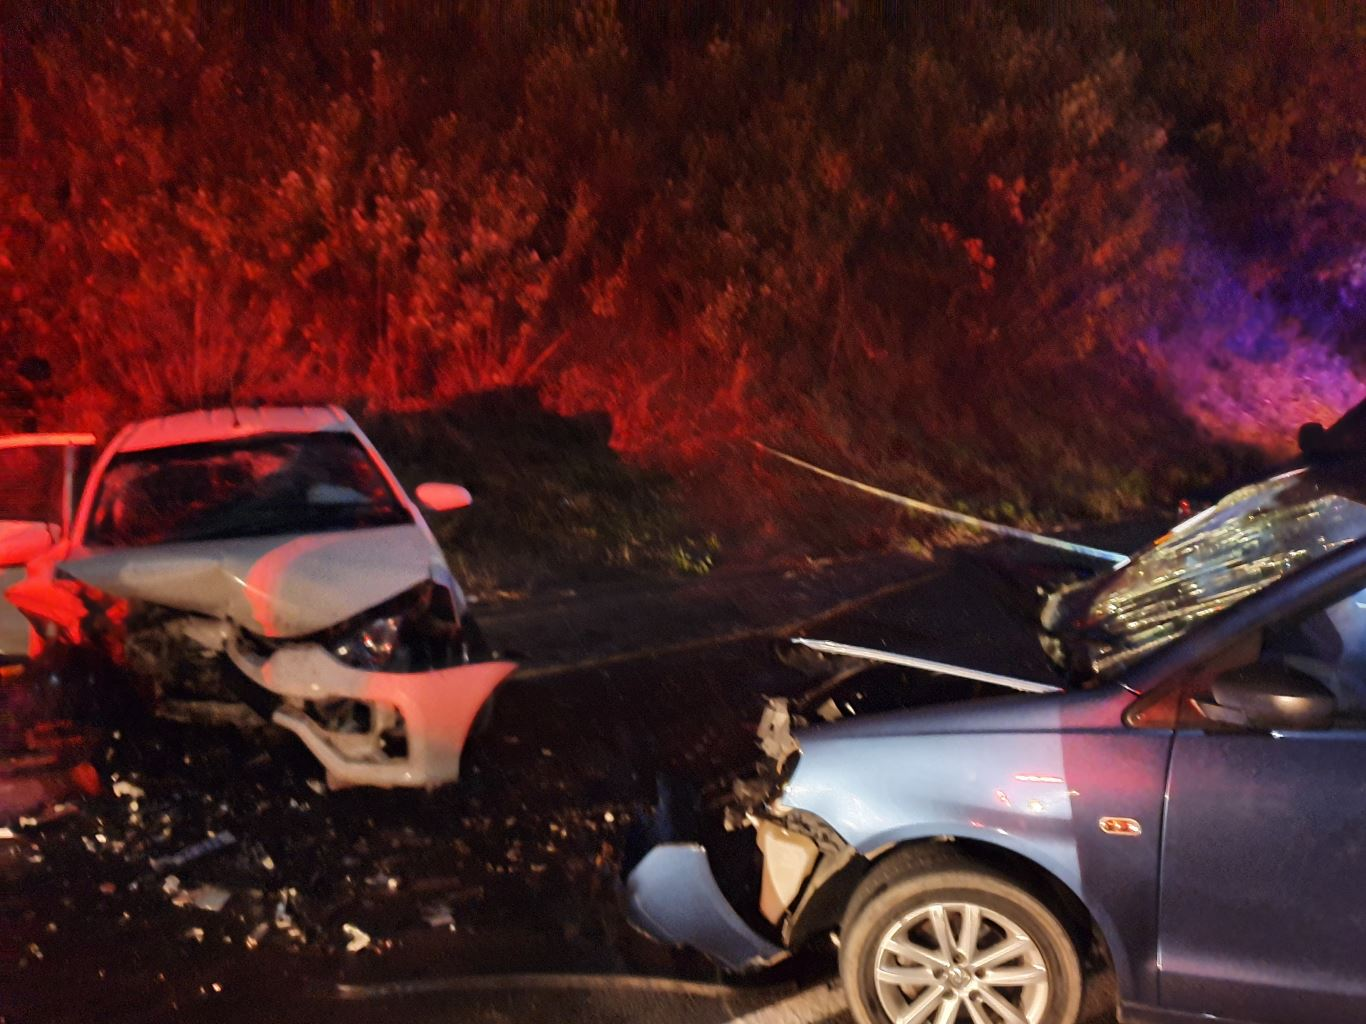 1 Killed, 5 injured in M1 crash - Arrive Alive